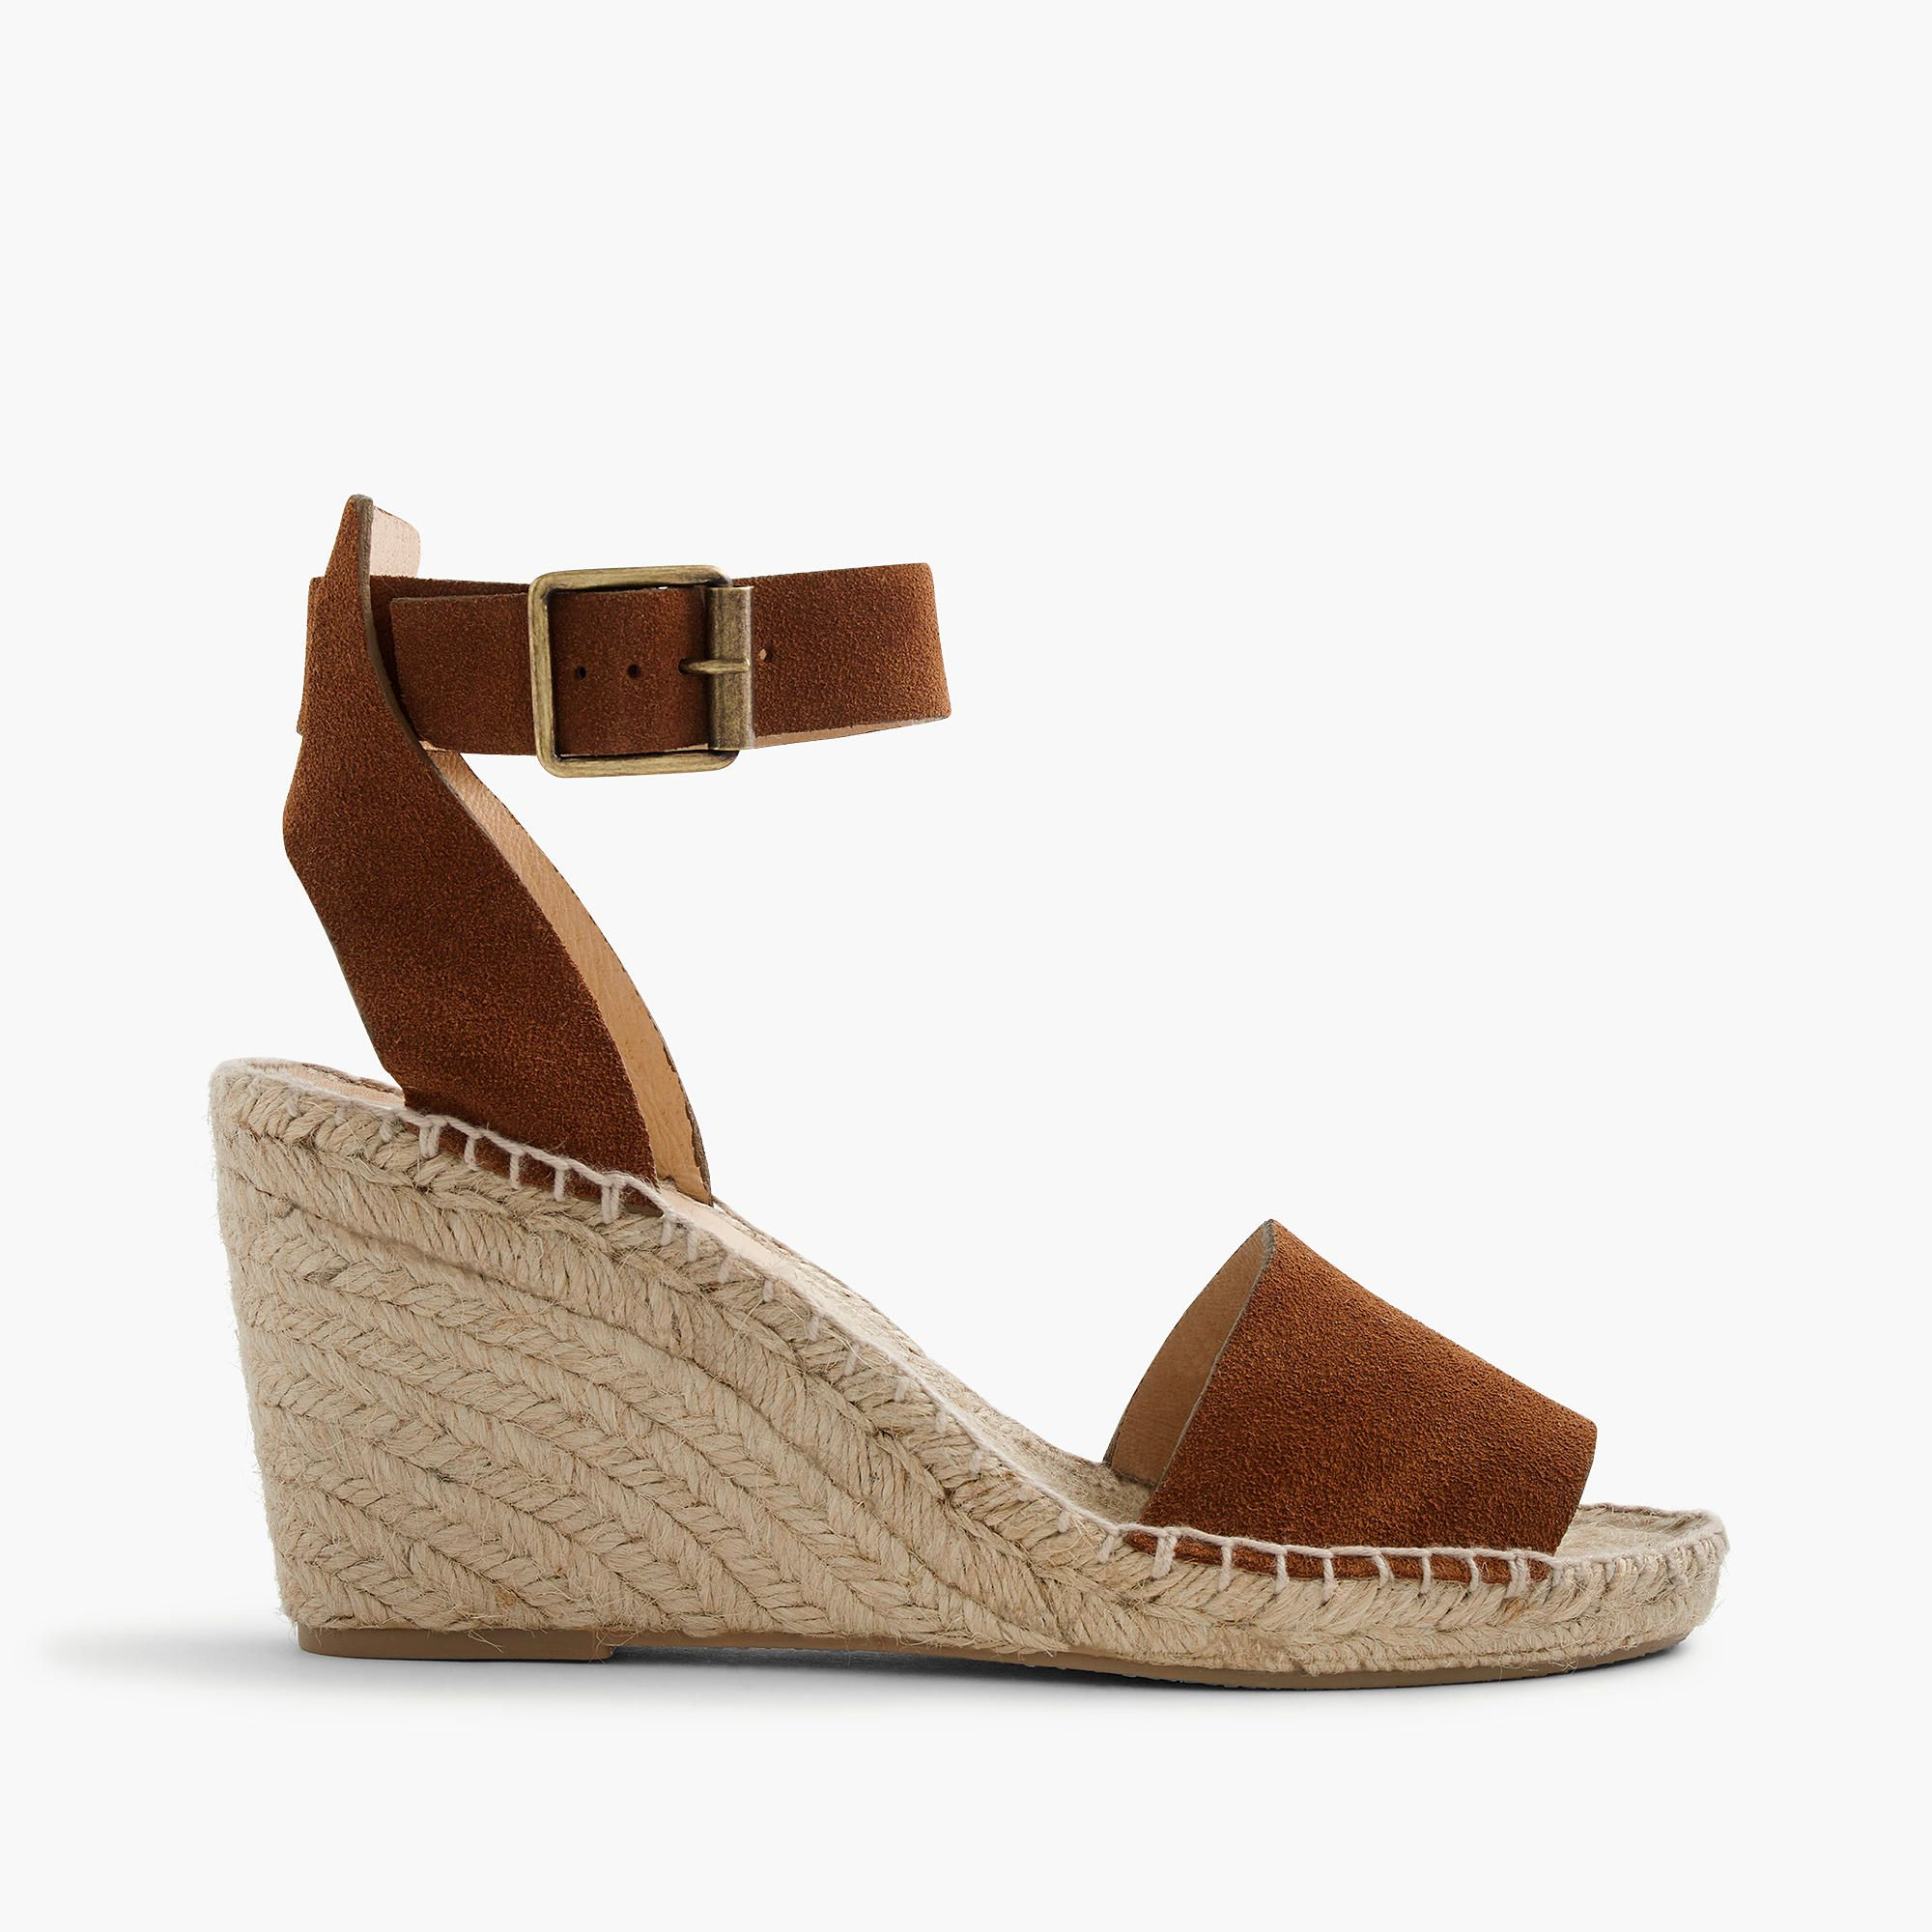 b153d301379 These pretty espadrilles in tumbled suede are practically begging ...